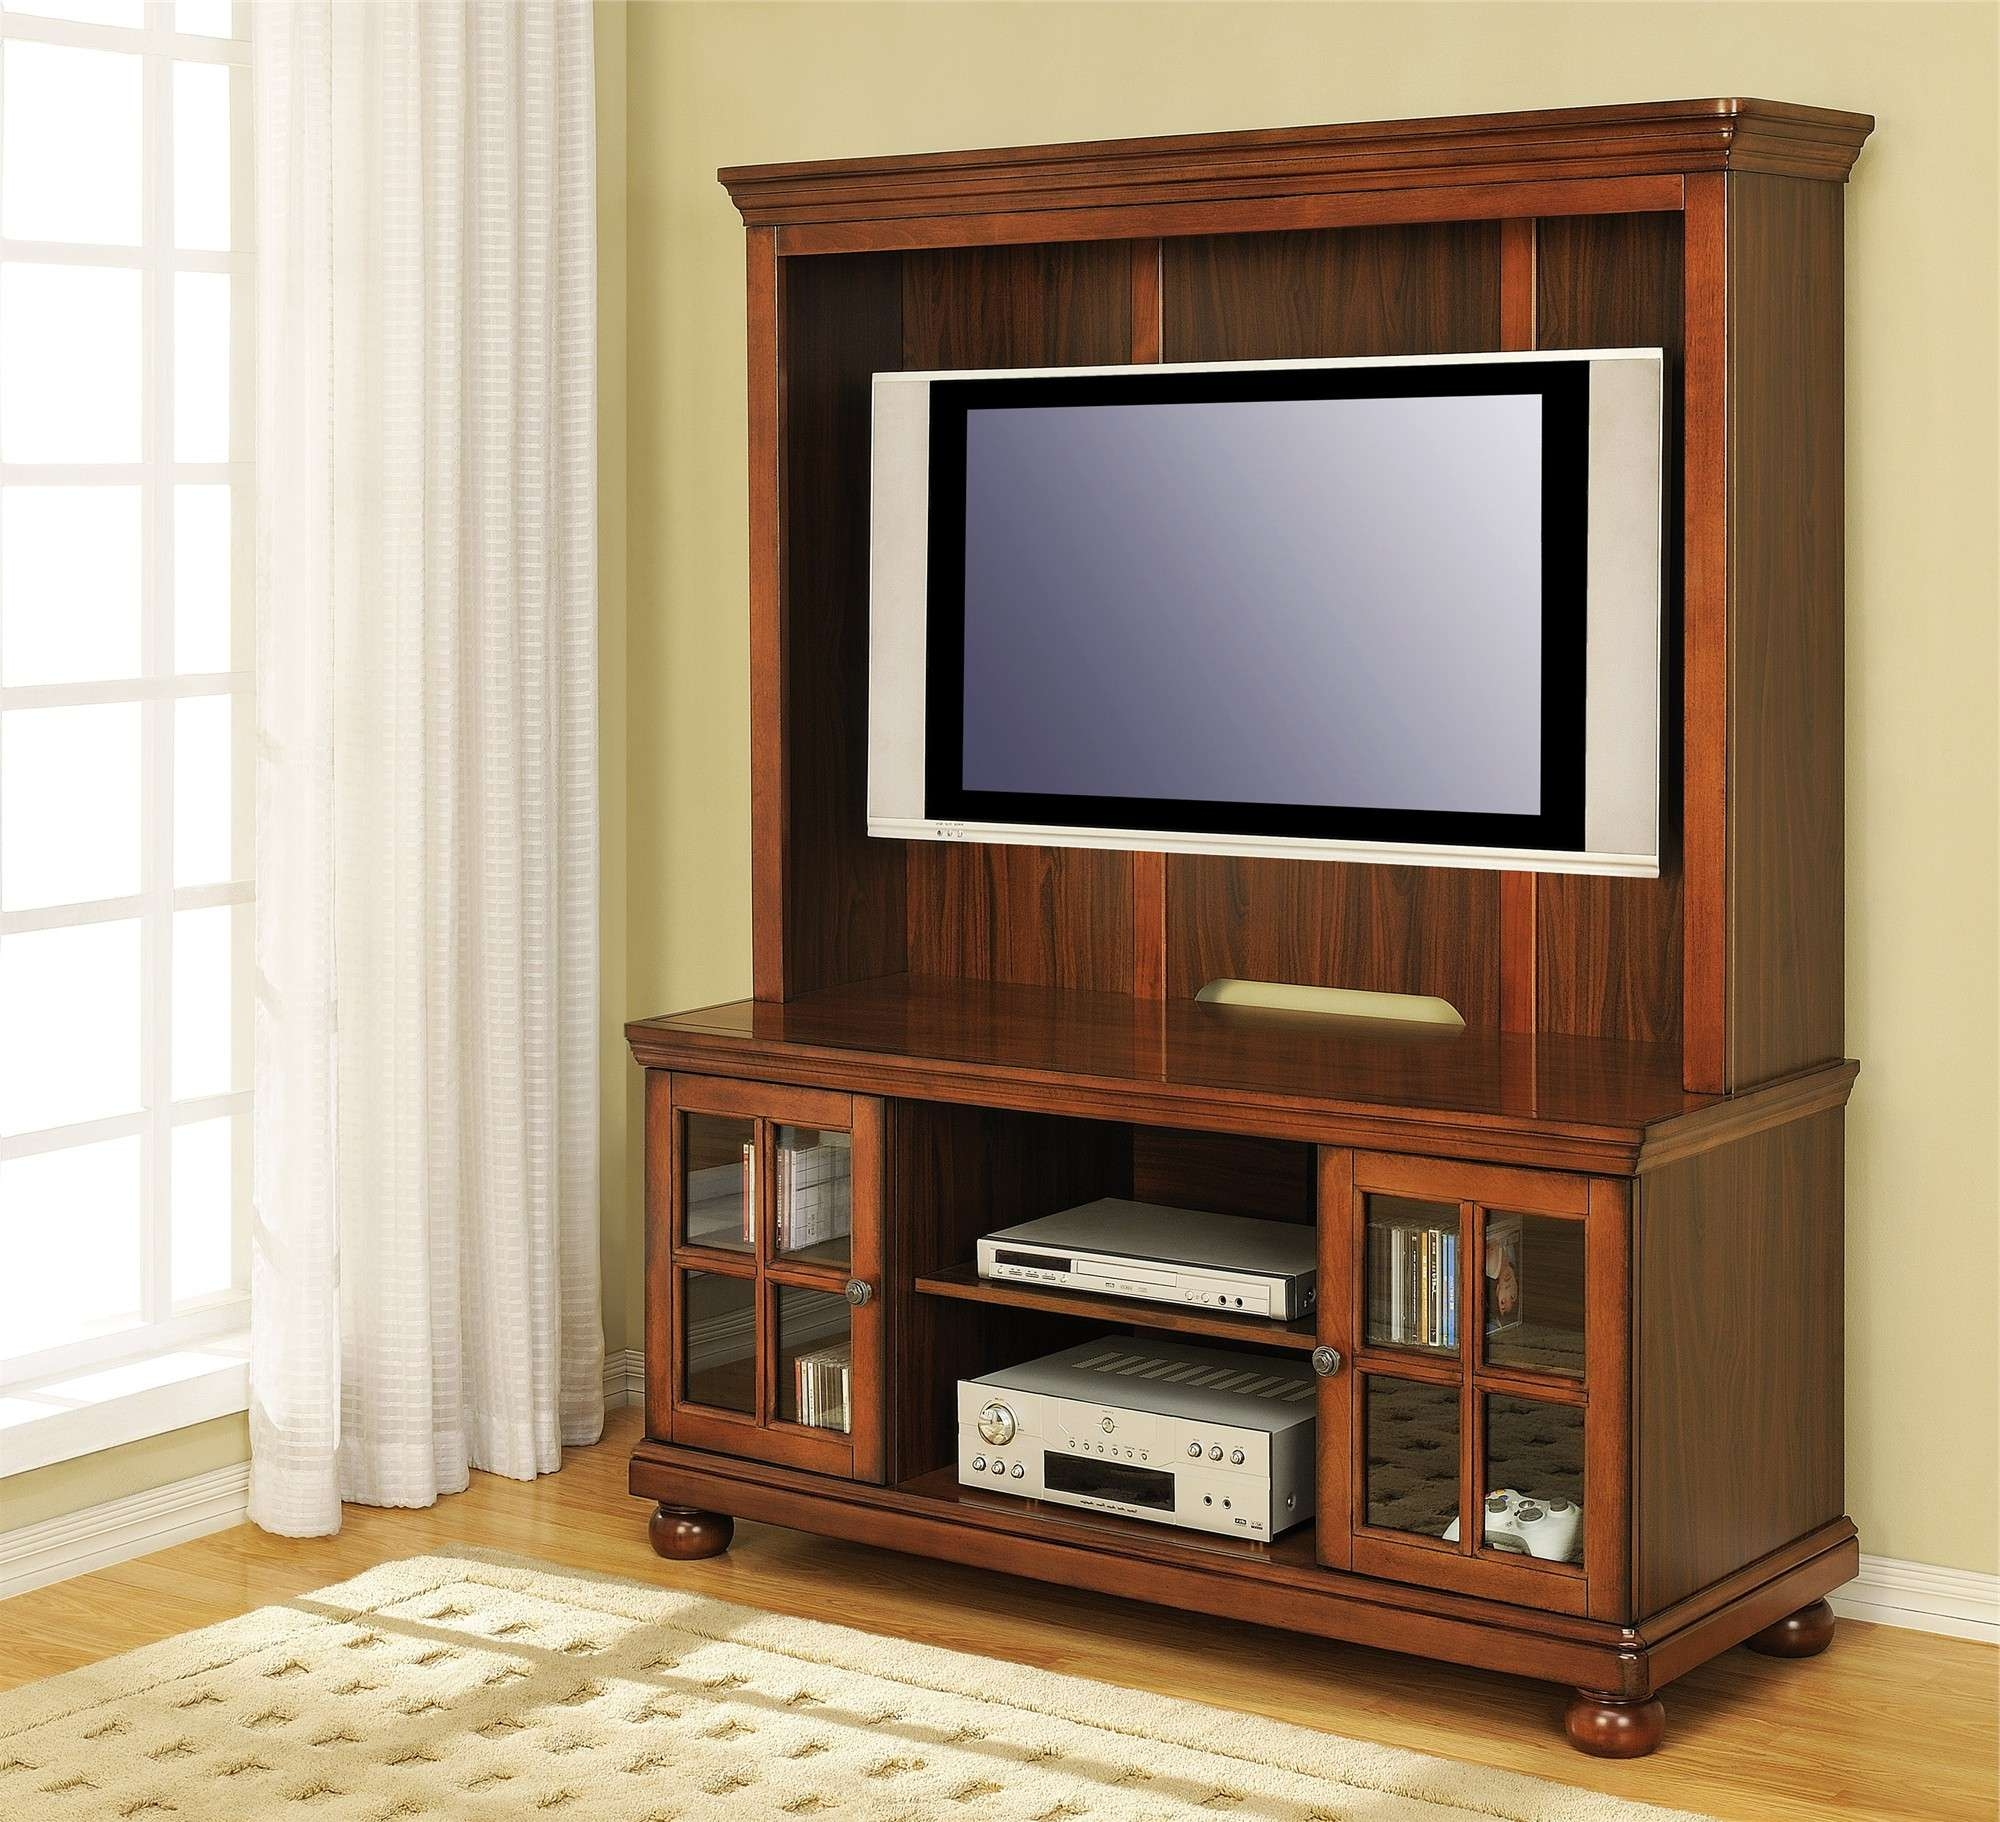 Modern Brown Oak Wood Media Cabinet With Mounted Tv Storage Inside Contemporary Tv Cabinets For Flat Screens (View 20 of 20)